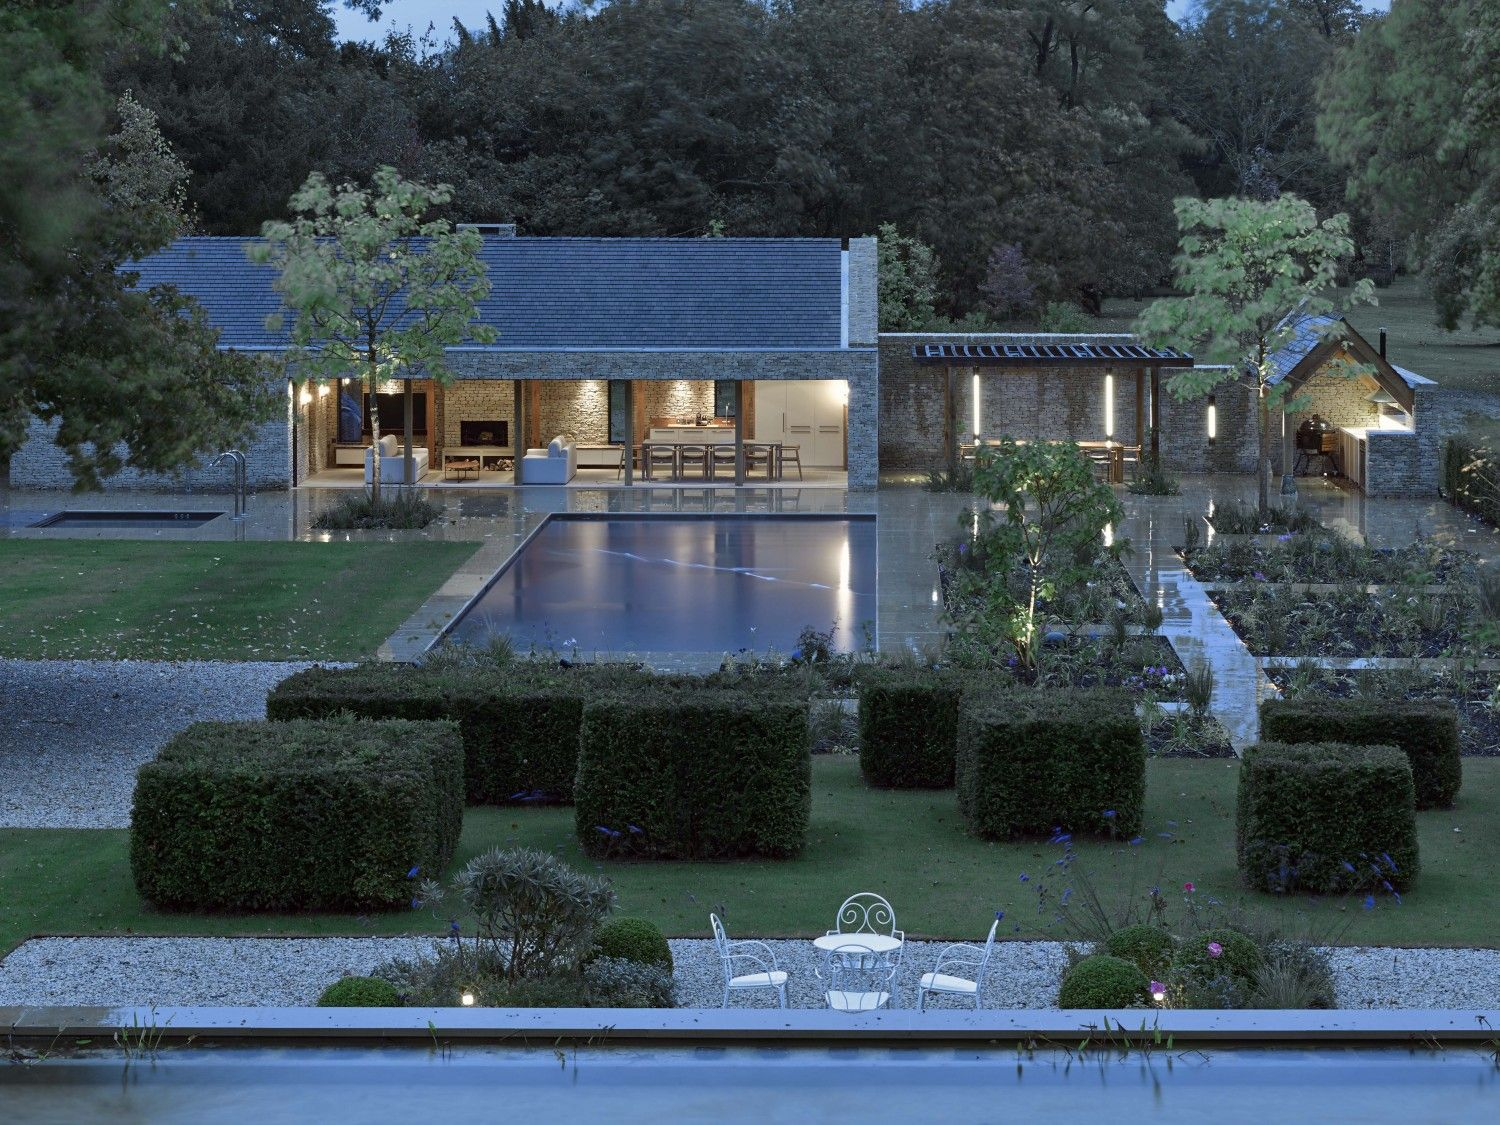 Contemporary Stone Pool House | Clipped Cube Hedges || Michaelis Boyd  Associates U2014 Oxfordshire Pool